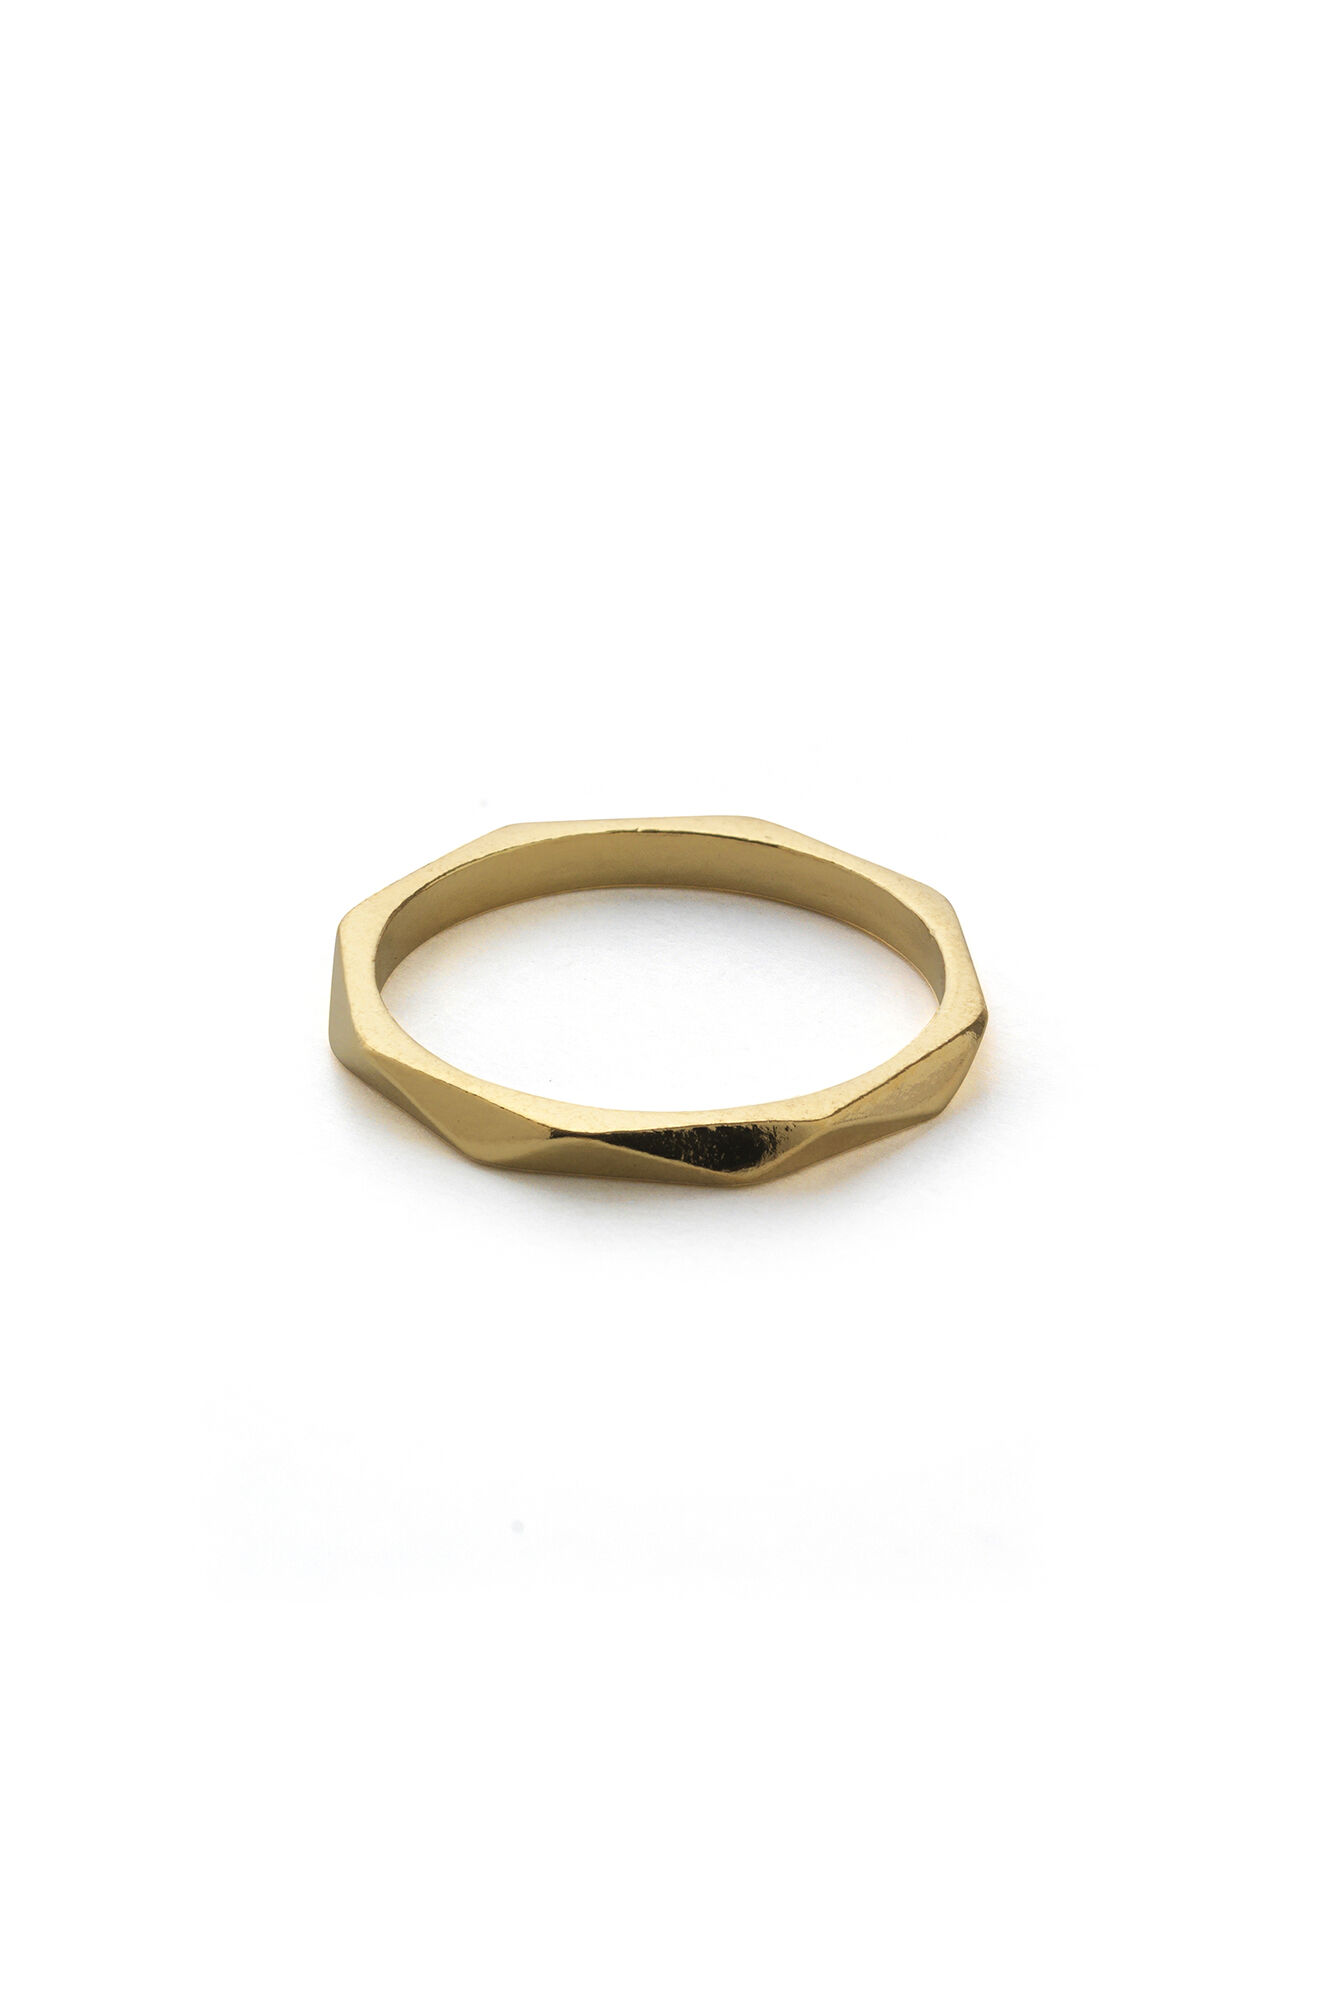 ENWATSON RING, GOLD